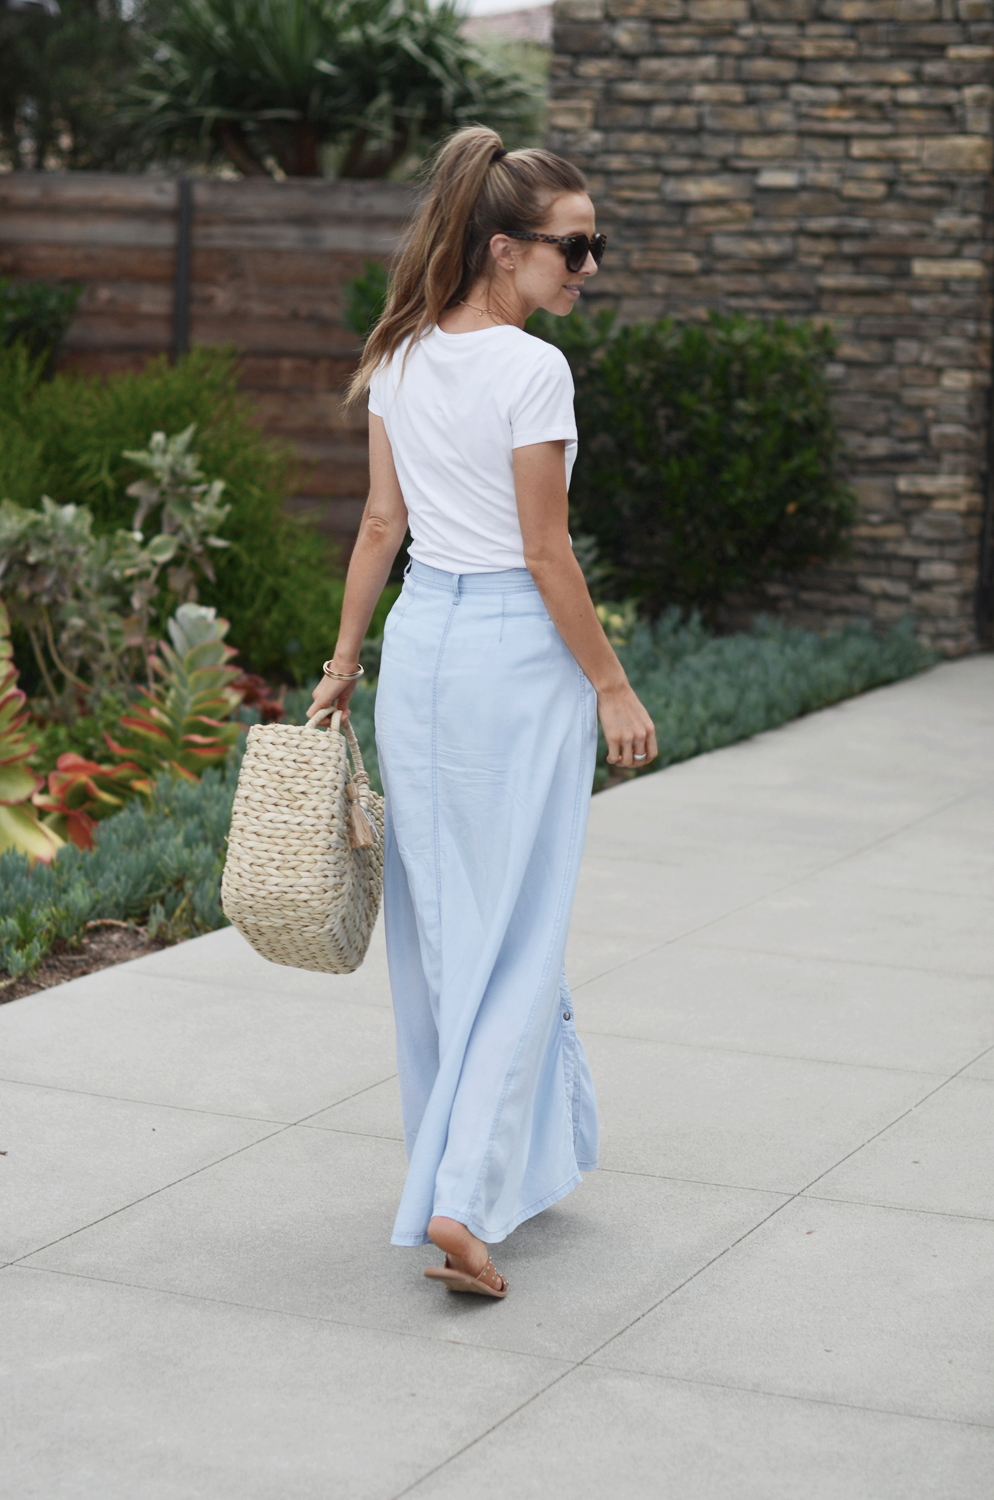 Merrick's Art Lord and Taylor Maxi Skirt